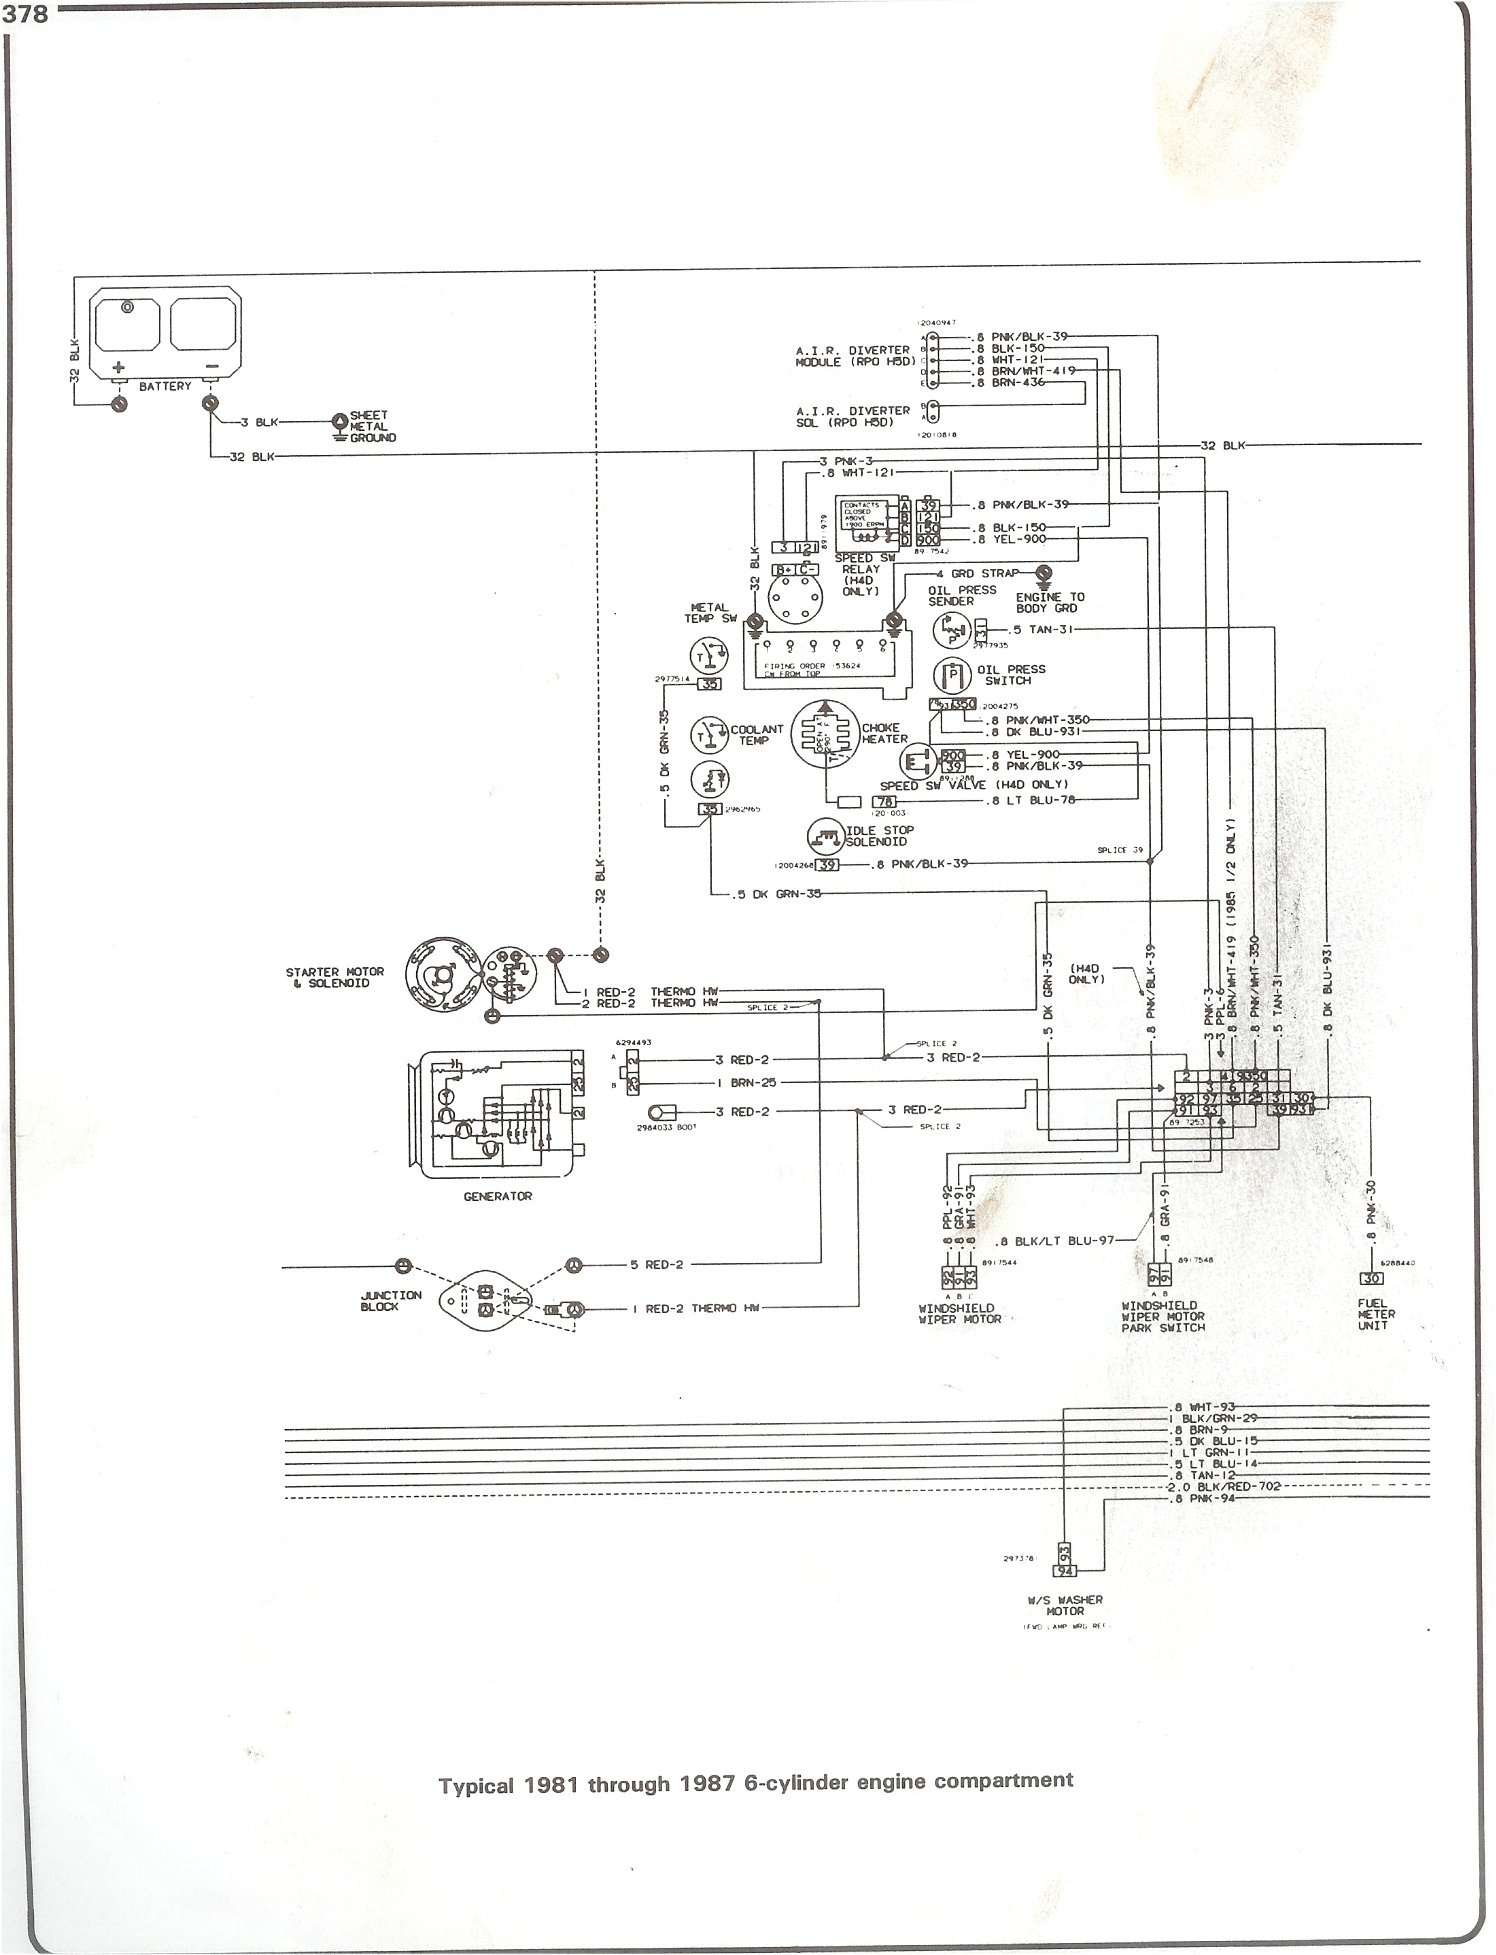 Complete 73 87 Wiring Diagrams 1974 Bmw 2002 Engine Diagram 81 I6 Compartment